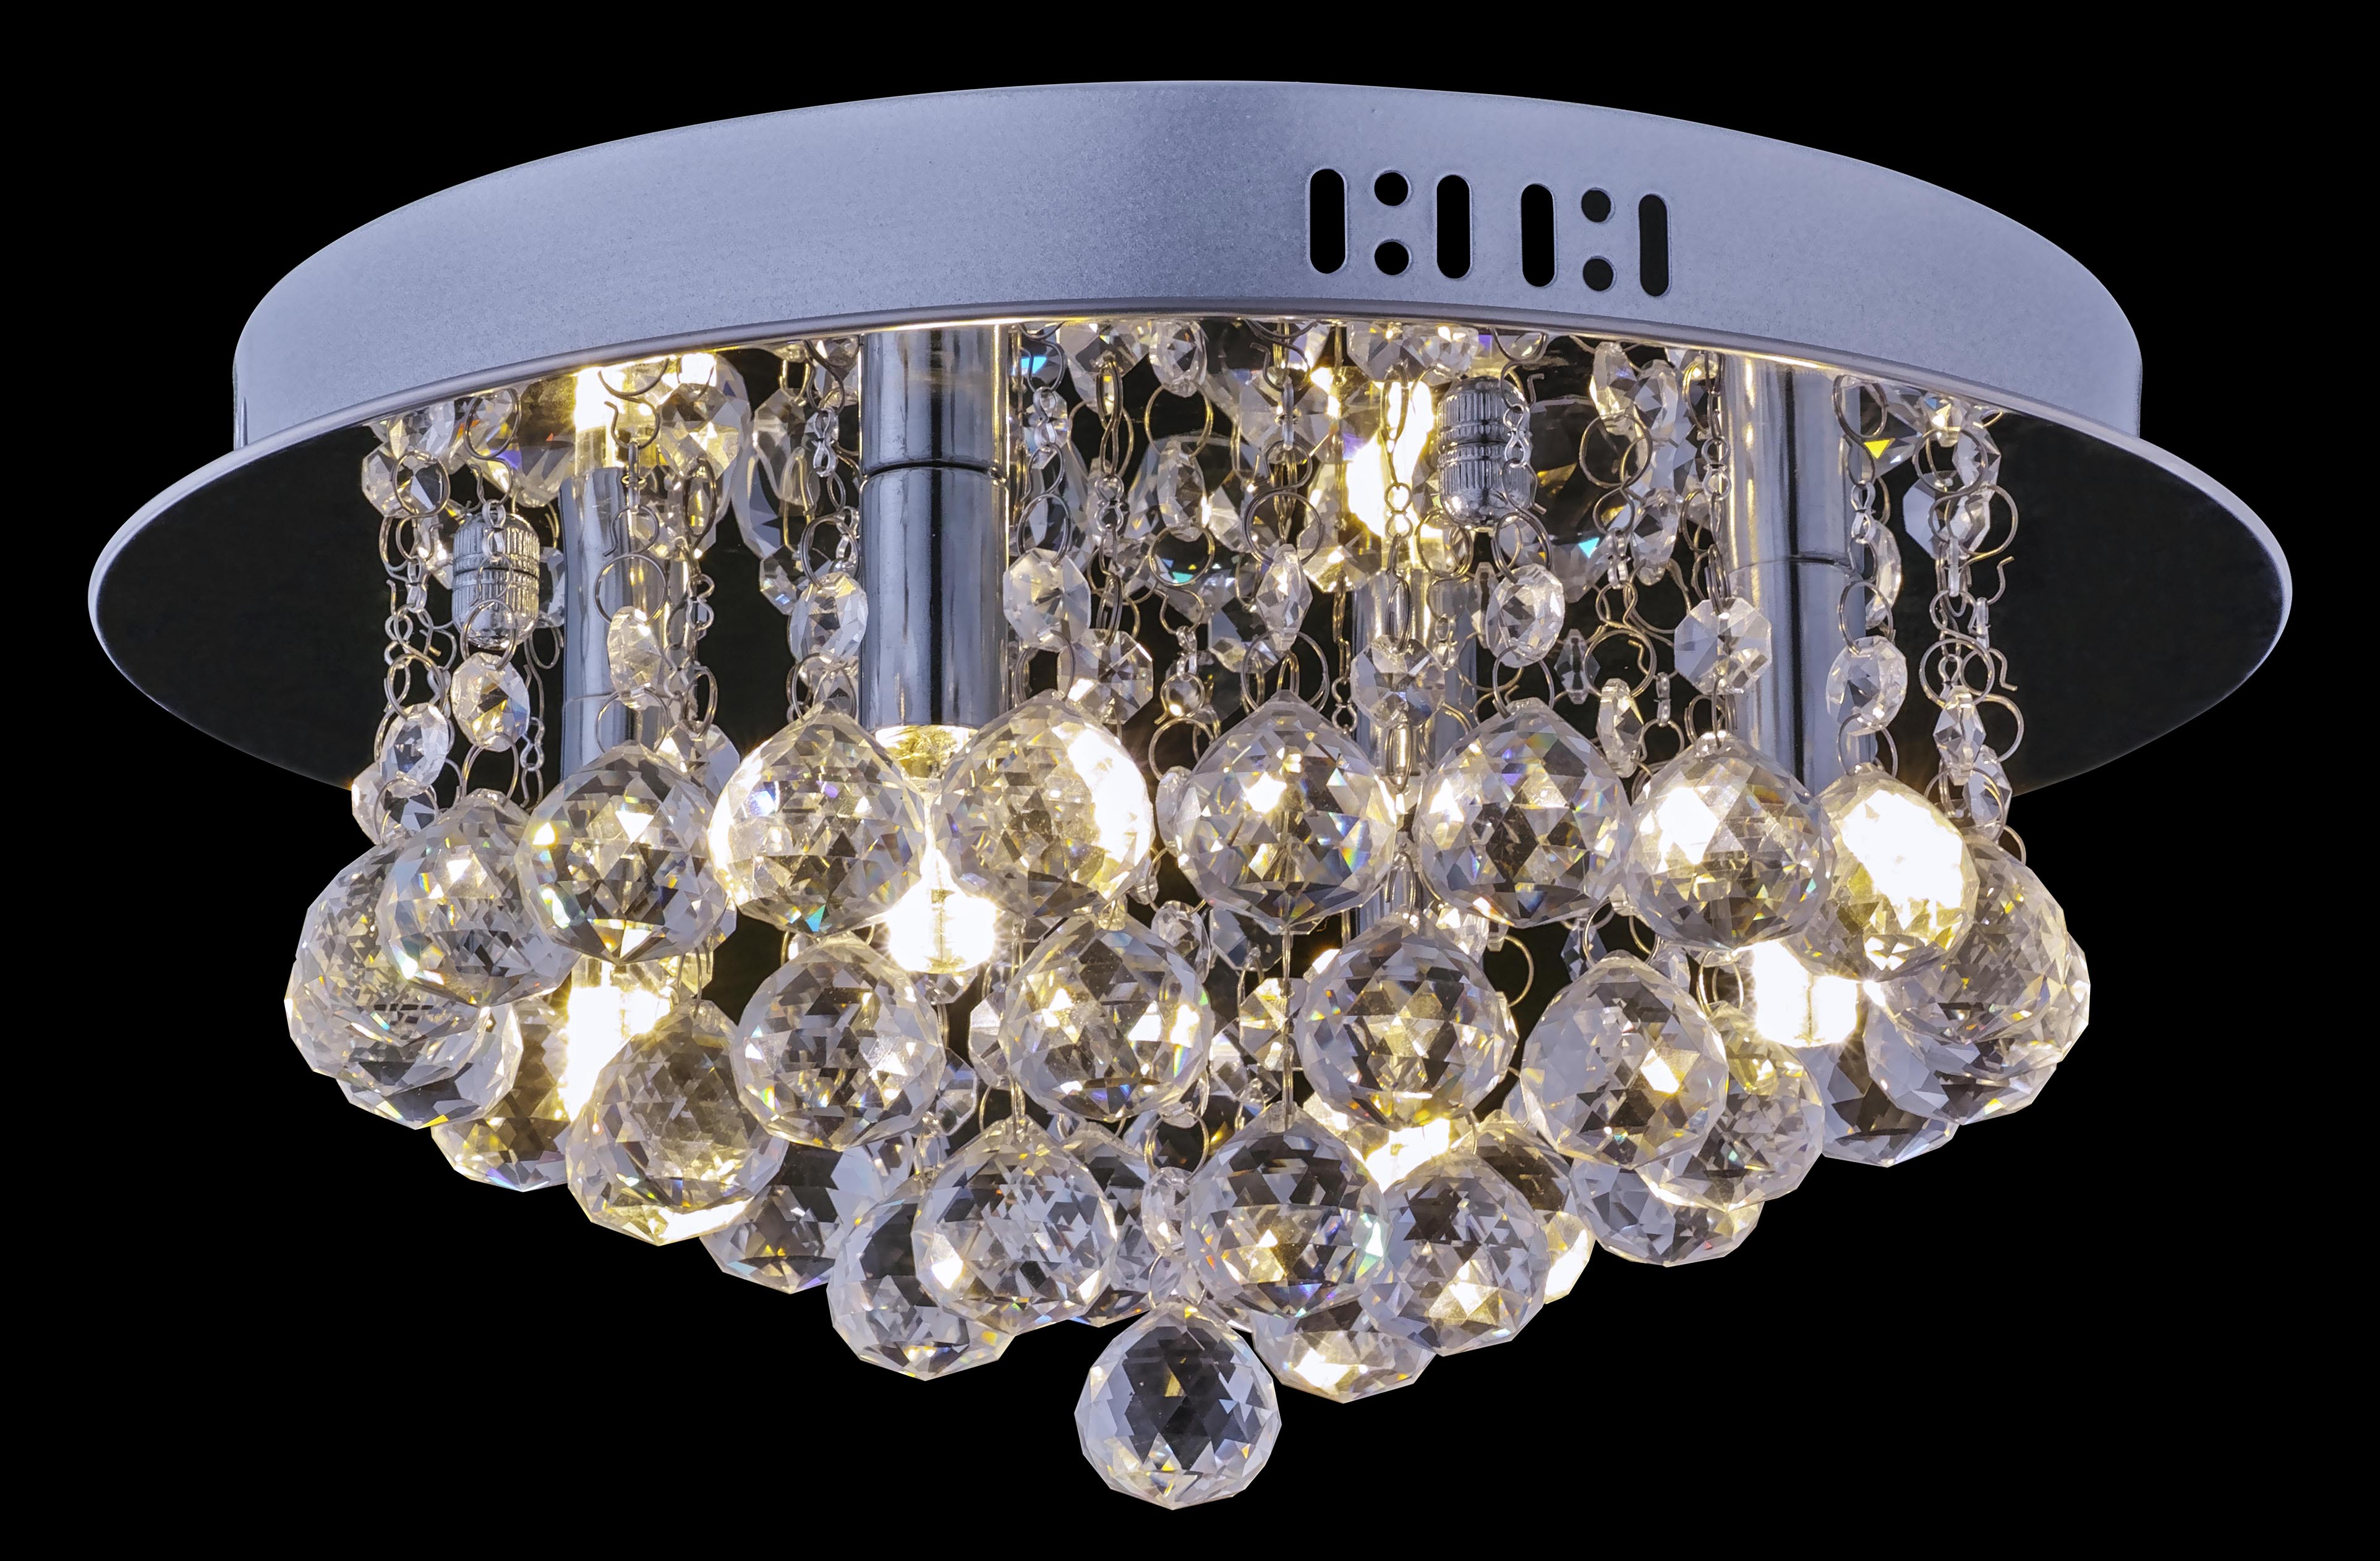 FluxTech - Phantom Raindrop 35CM Crystal Chandelier Ceiling Light Fixture